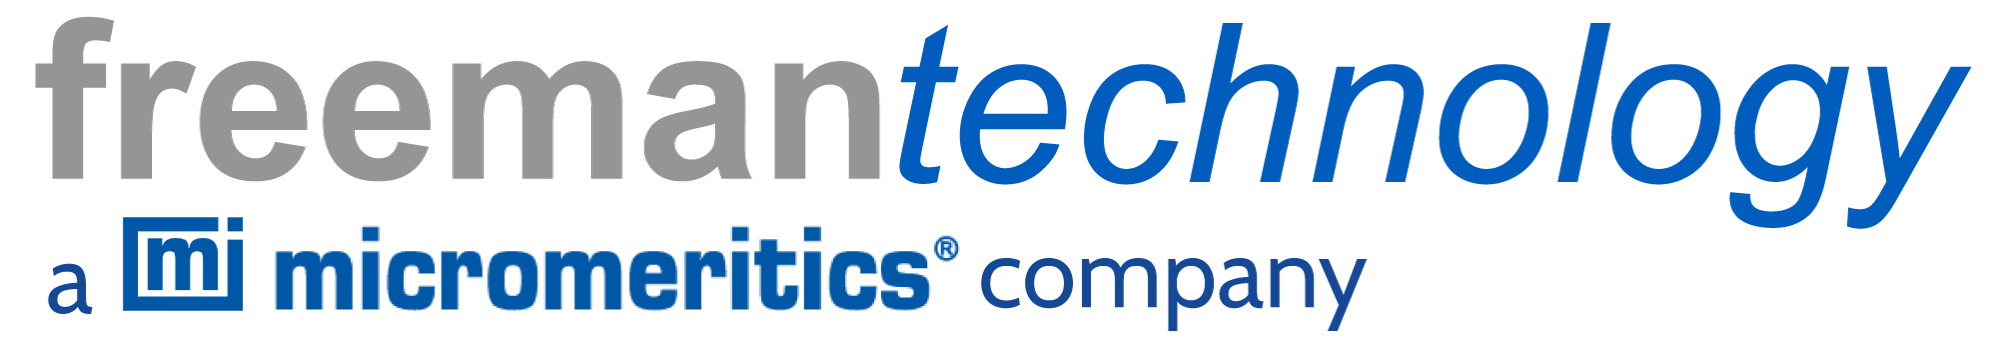 FT-Logo_Micromeritics_High-Res_(2).png